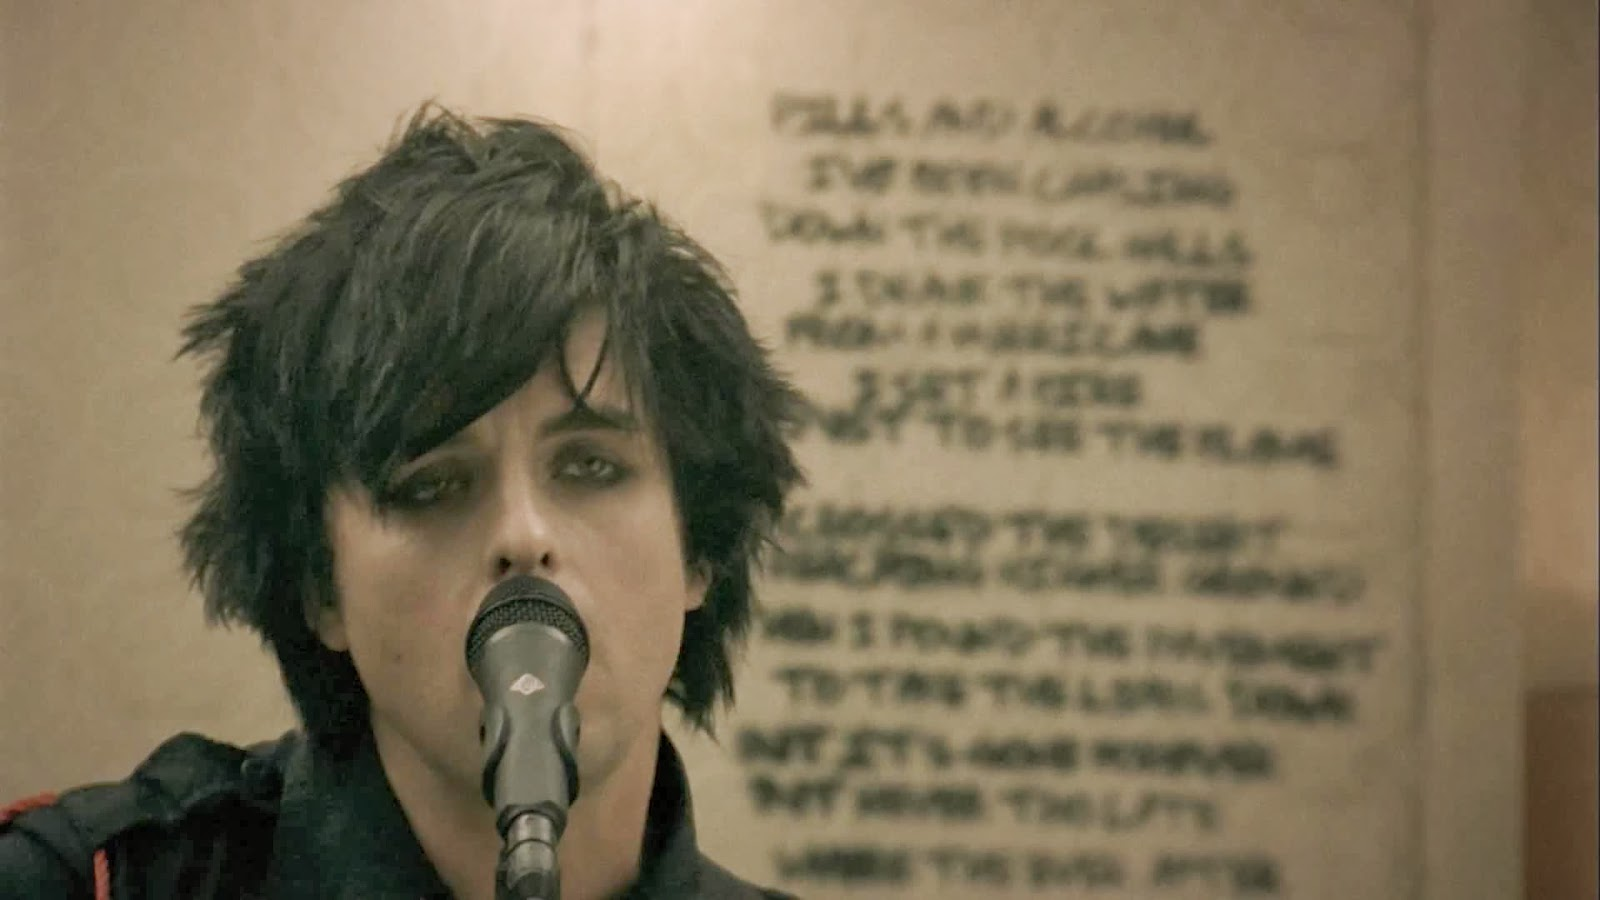 Green Day - 21 Guns [Official Music Video] | Wallpaper Screenshot Pics: 1080hdpicture.blogspot.com/2014/01/green-day-21-guns-official-music...